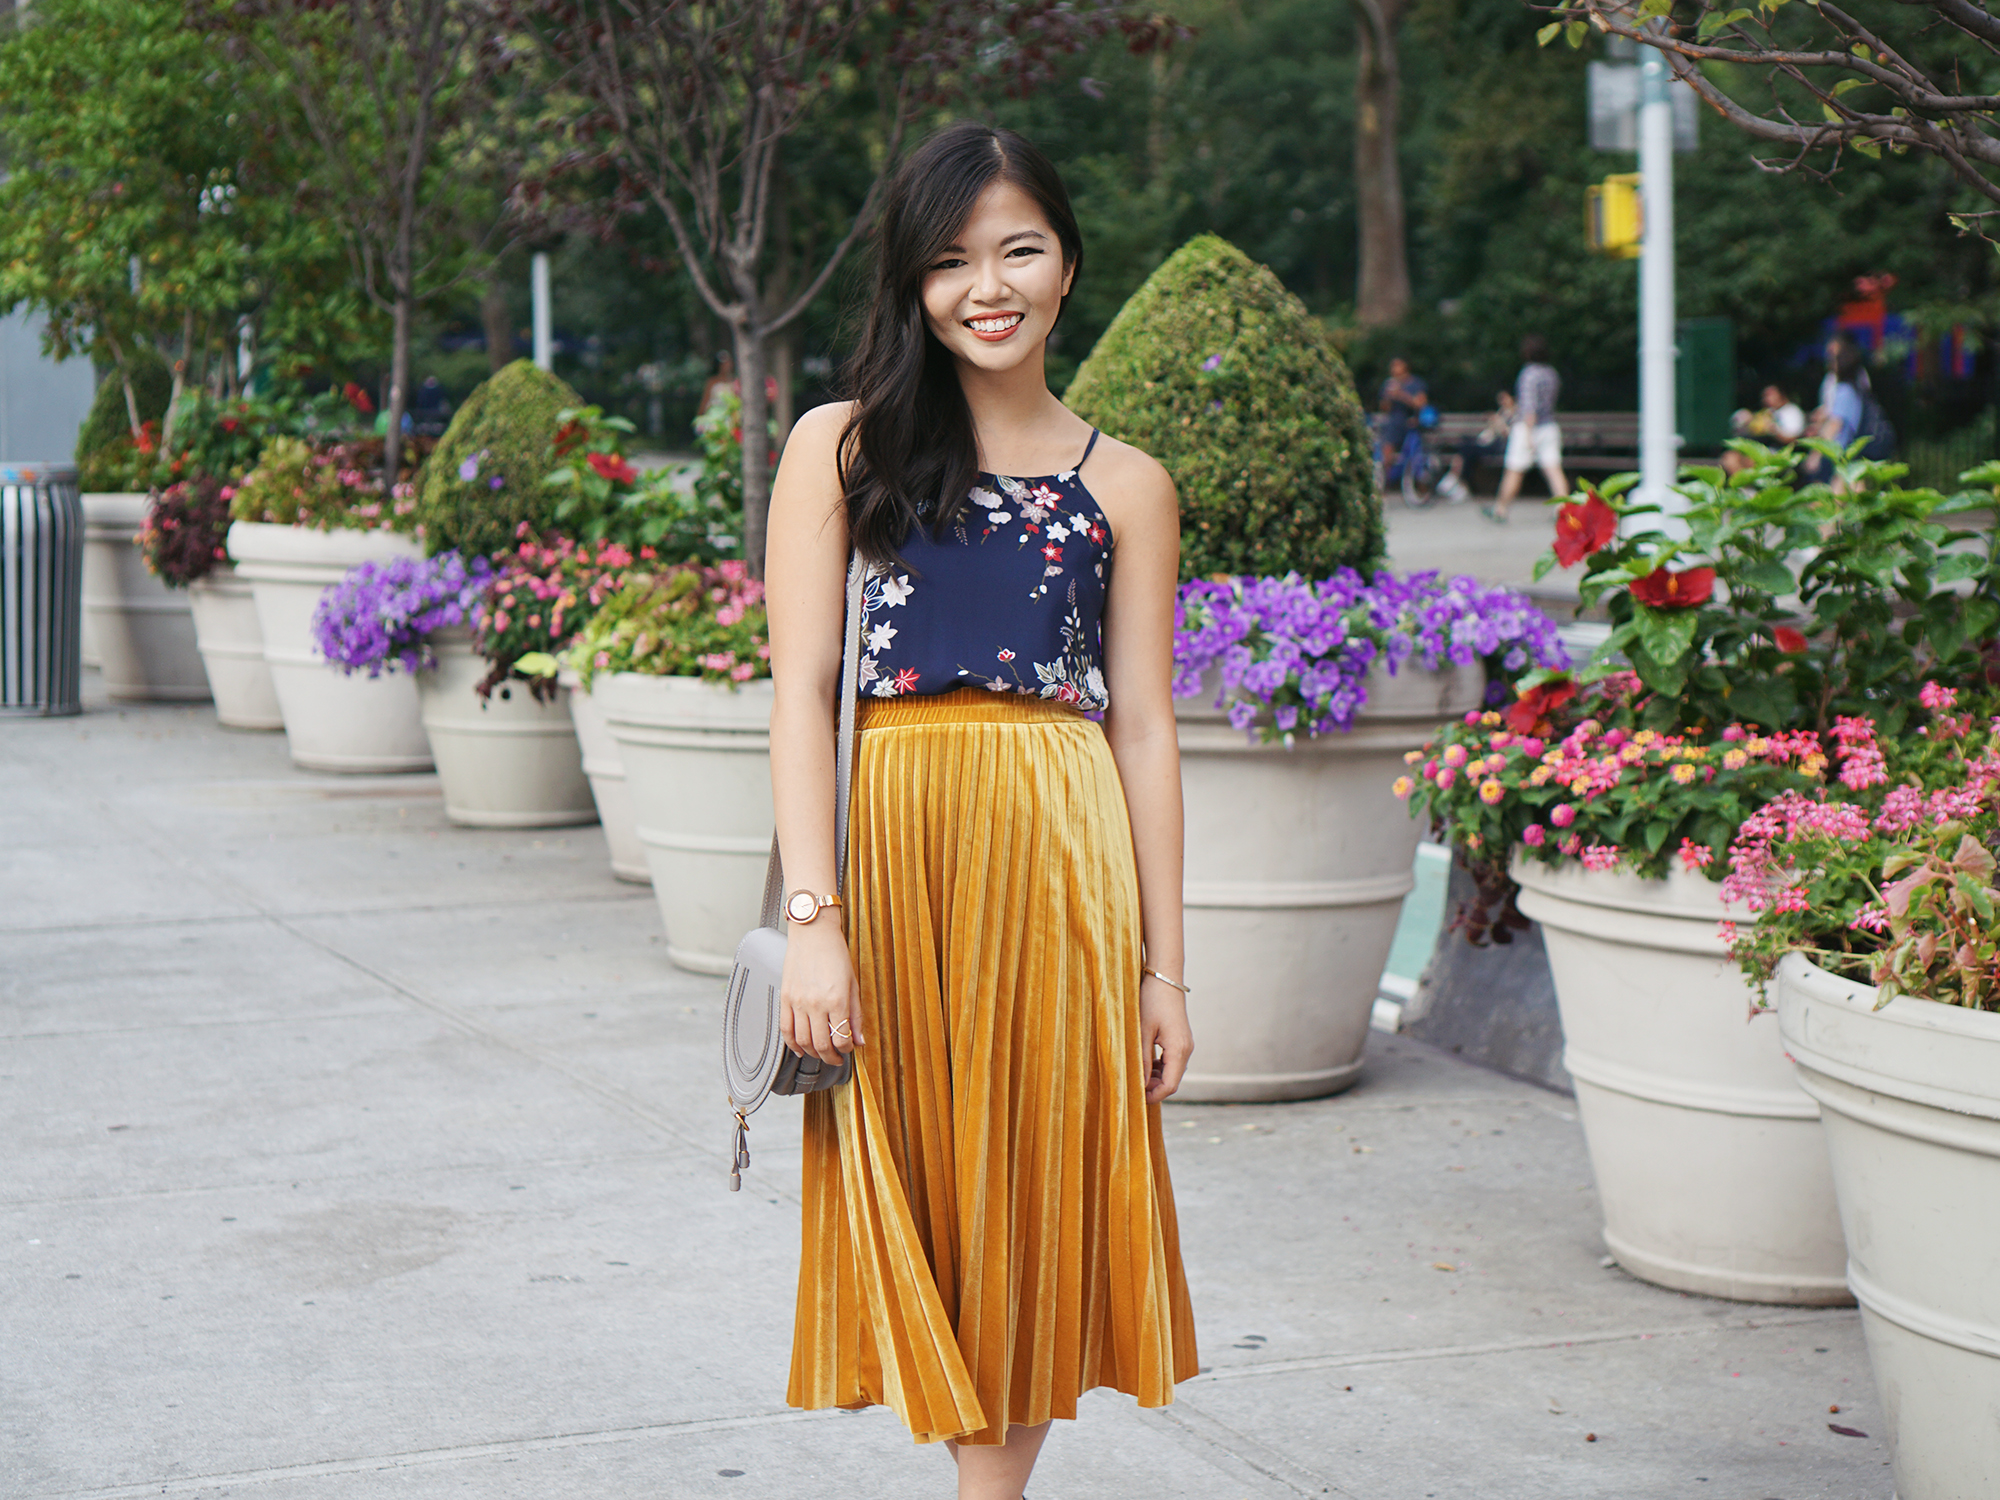 Petite Style: How to Wear a Midi Skirt